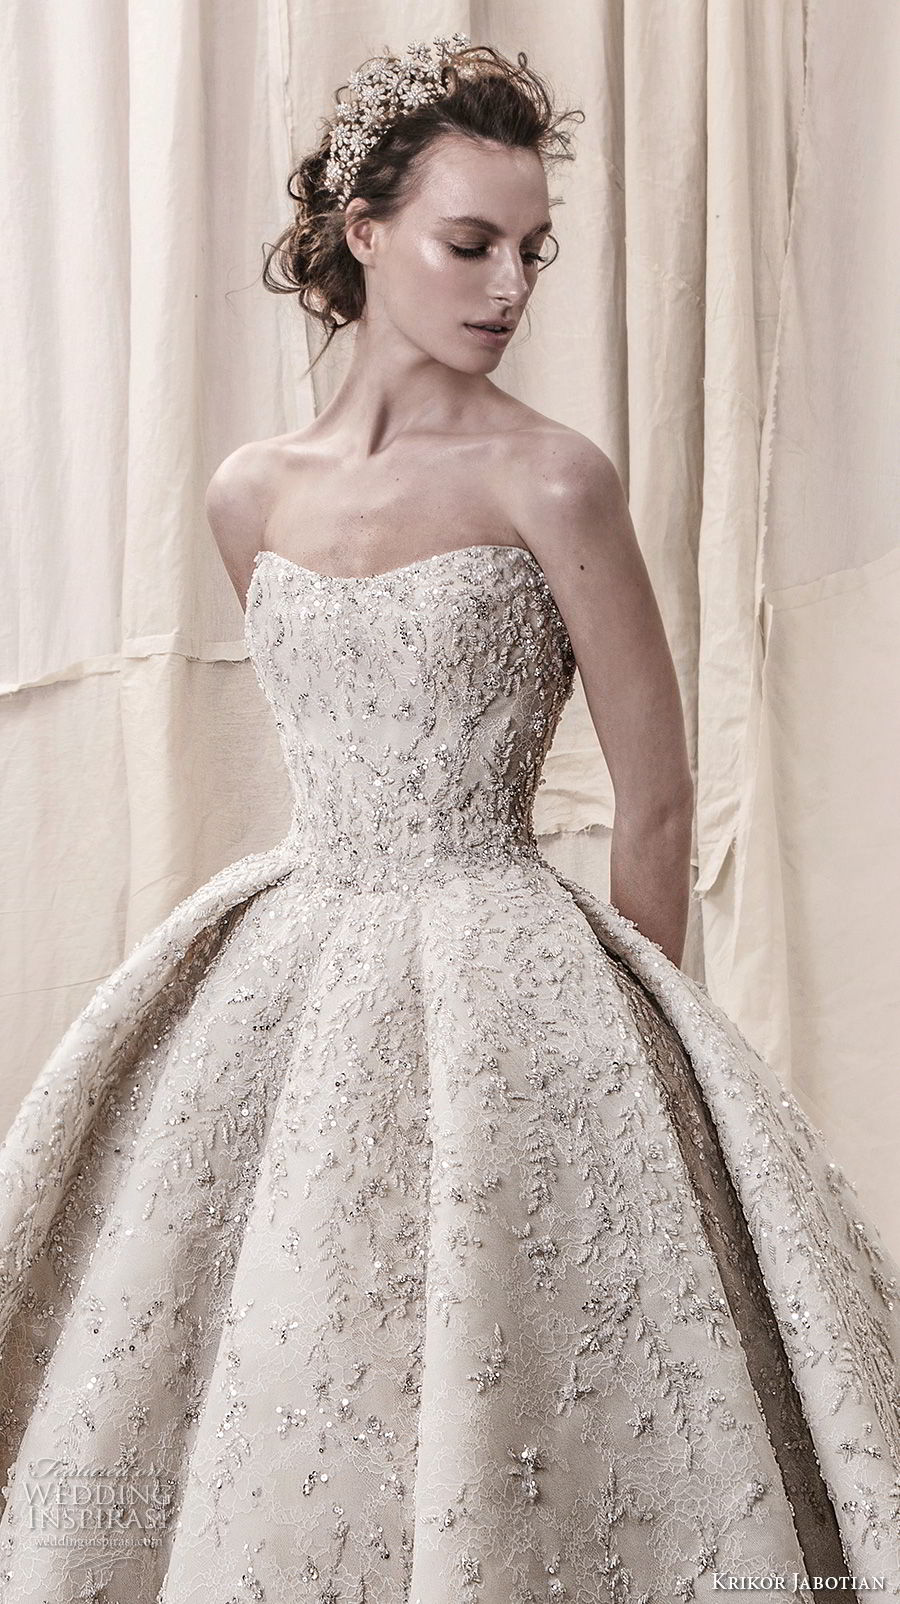 krikor jabotian spring 2018 bridal straplss semi sweetheart neckline full embellishment glamorous princess ball gown a line wedding dress open back royal train (05) zv